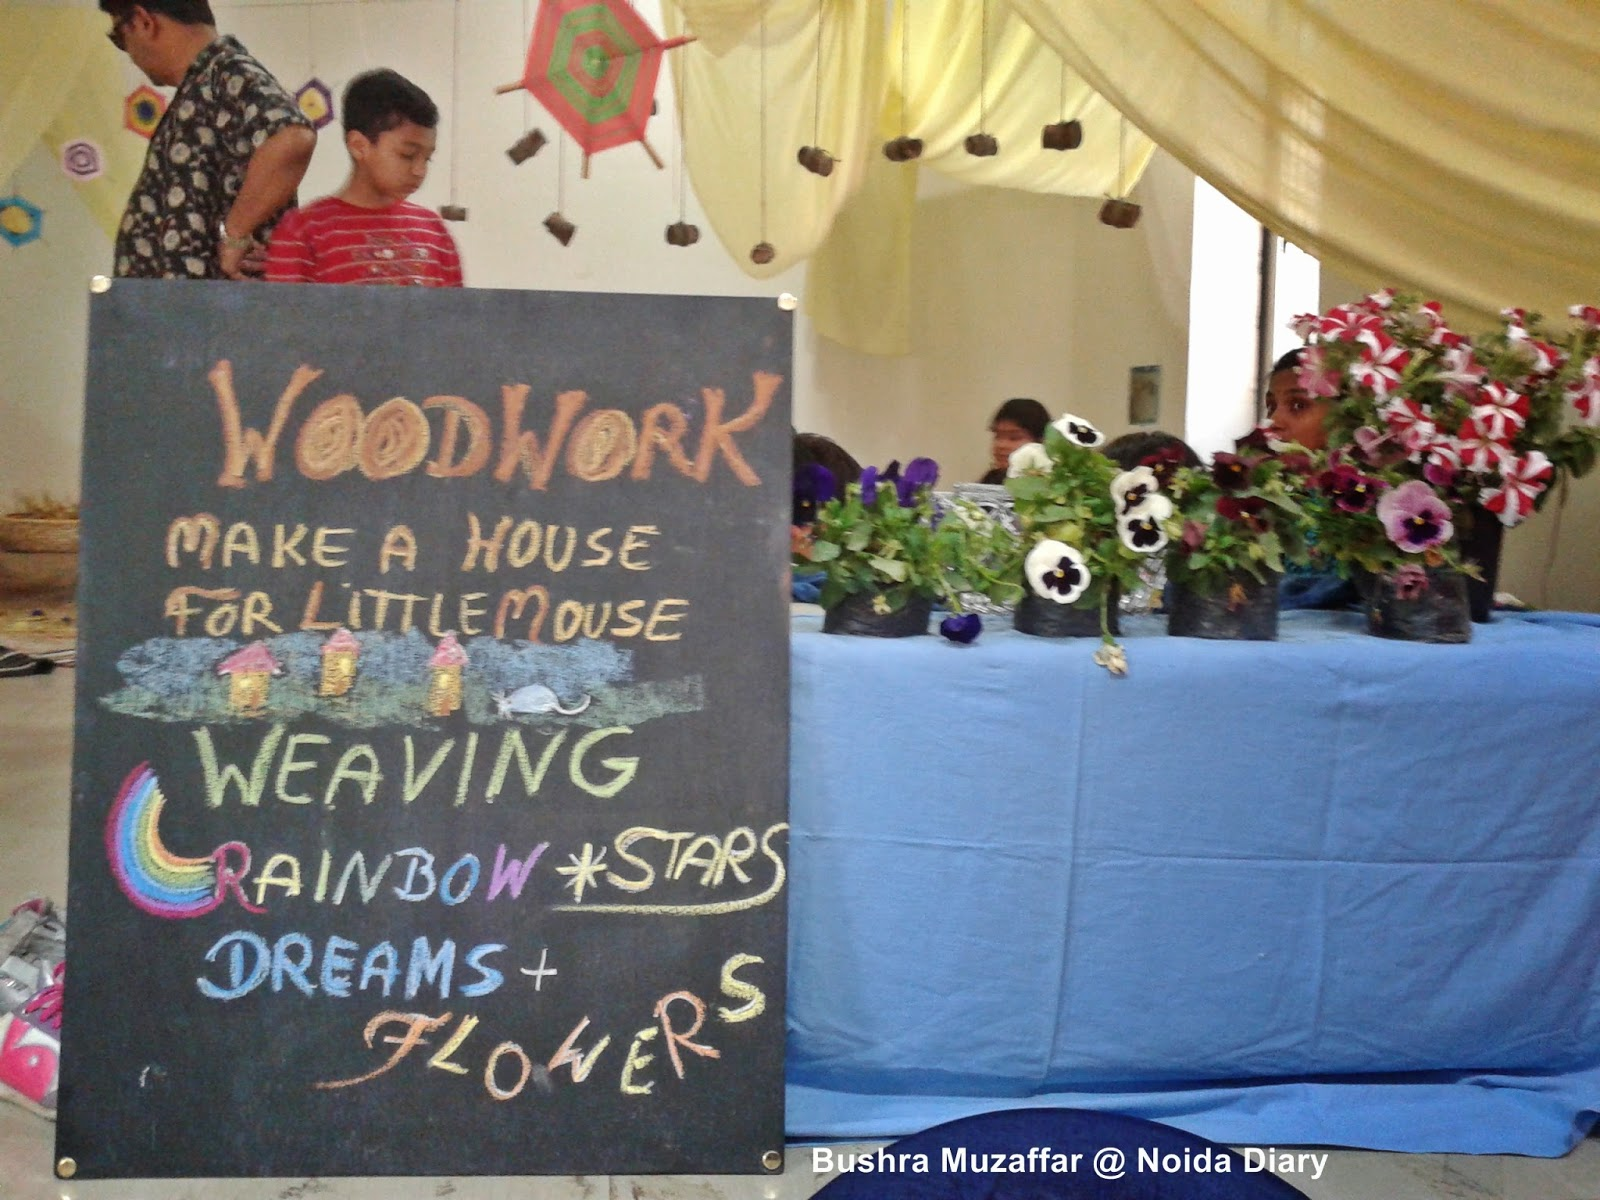 Woodwork and Weaving Activities at Vasant Udaya in Noida